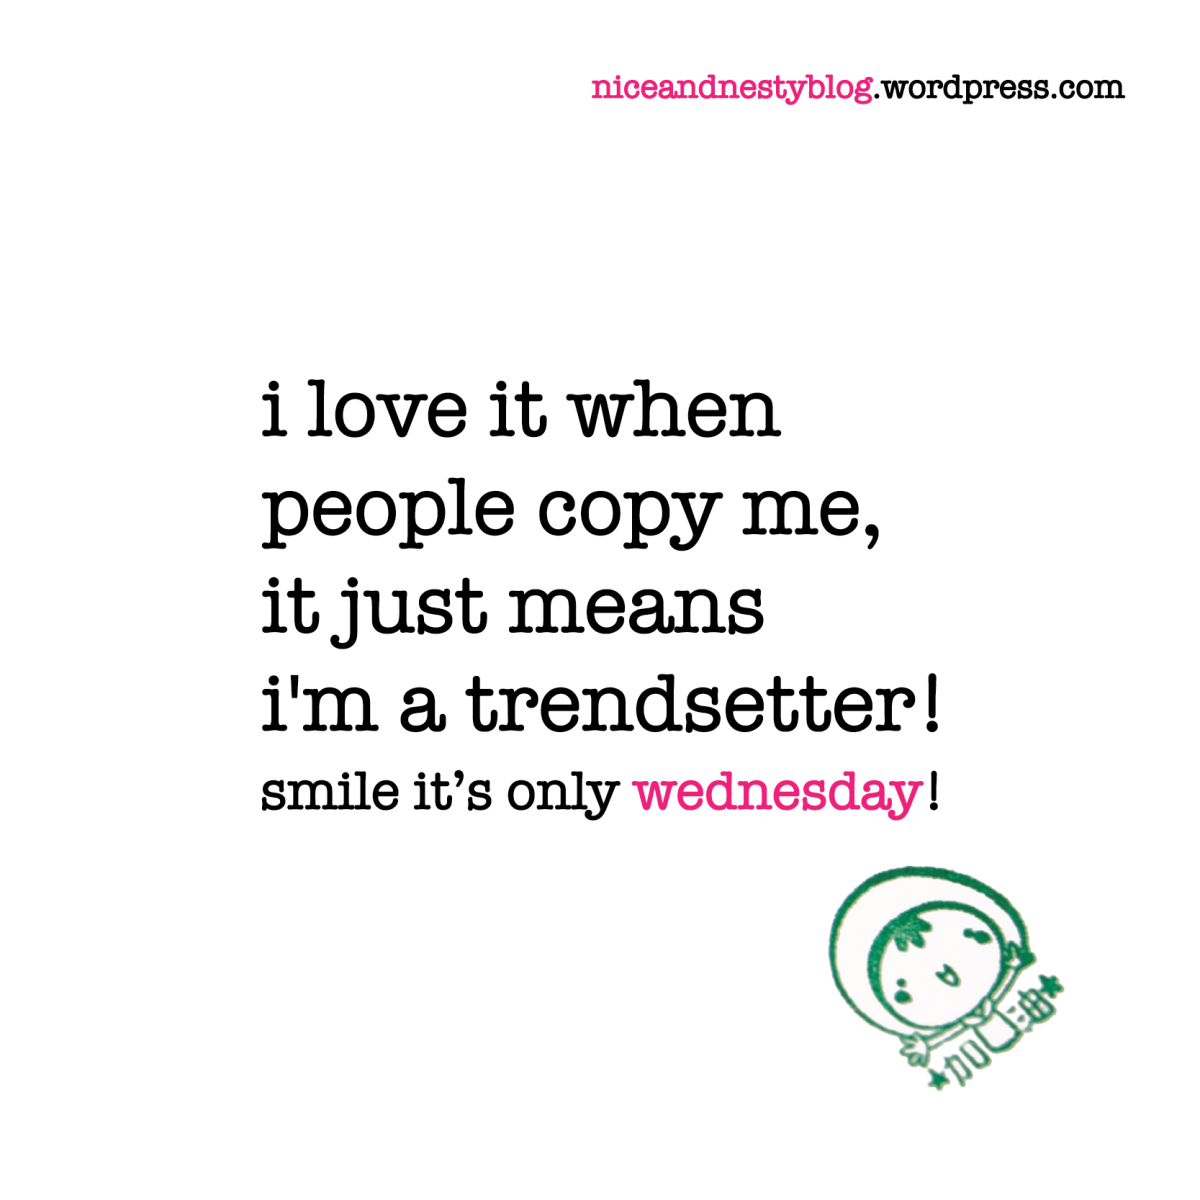 Niceandnestyblog Trendsetter Quotes Be Yourself Quotes Copying Me Quotes